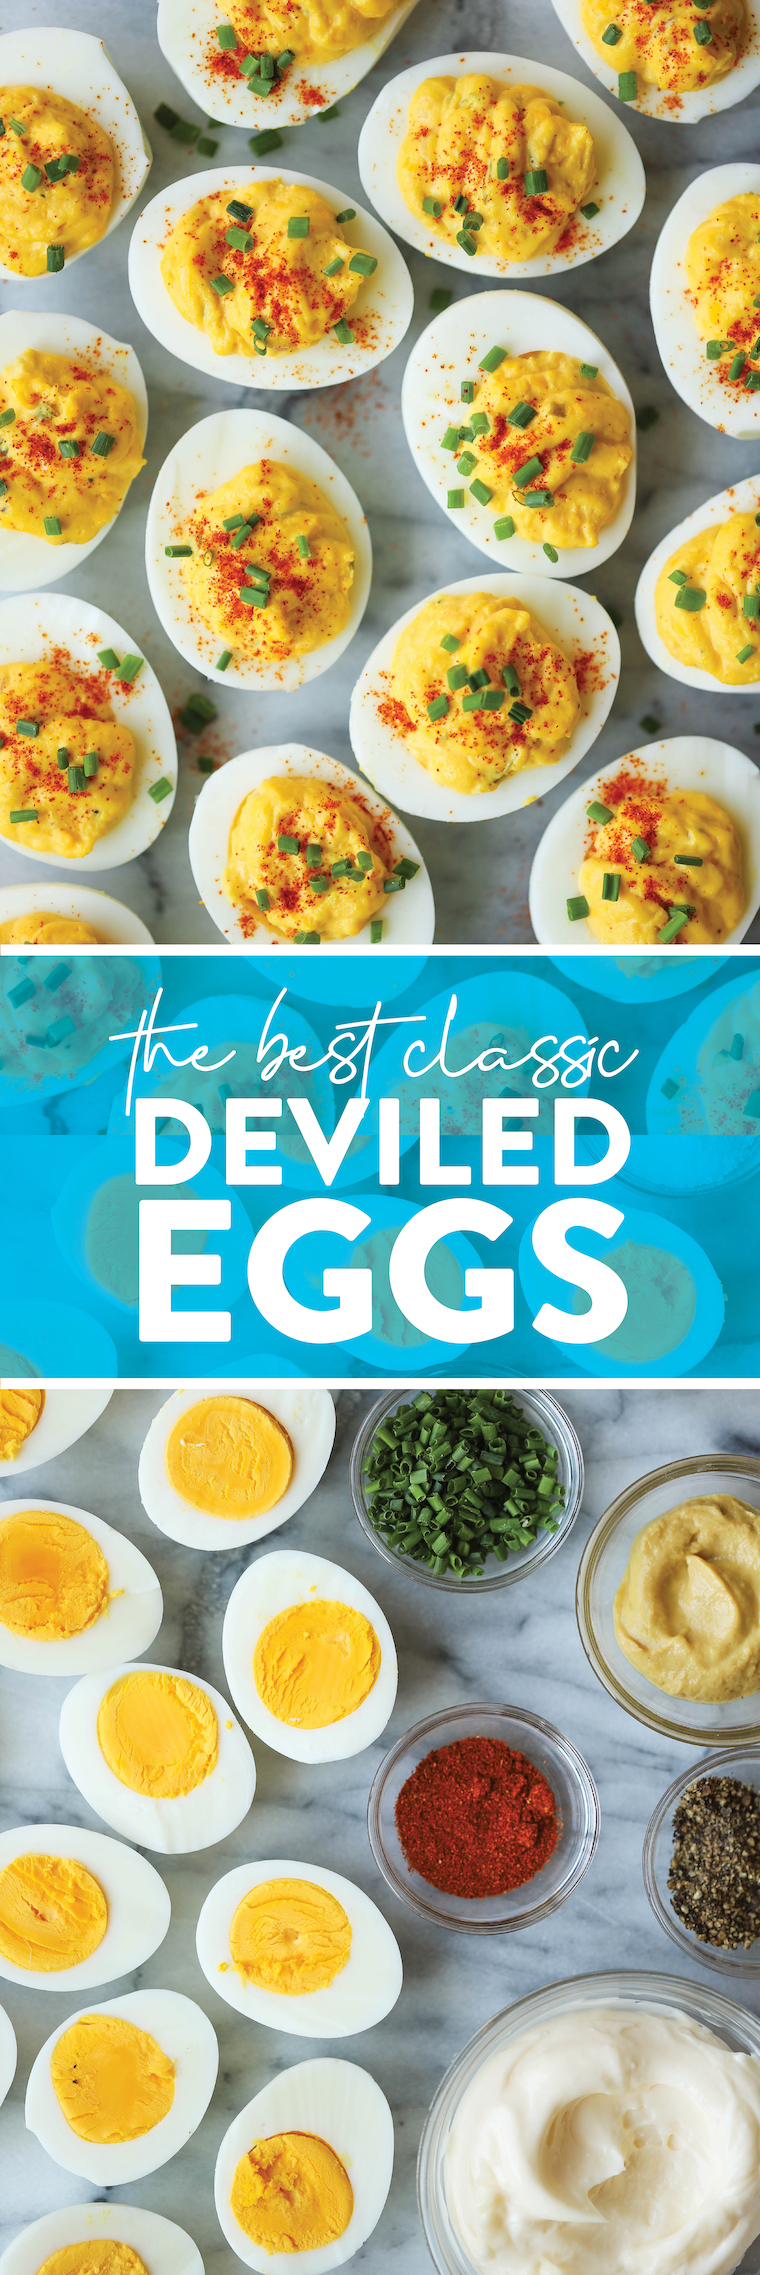 The Best Classic Deviled Eggs - Perfect for holidays and get-togethers. It is such a classic! So good, so creamy and such a crowd-pleaser.